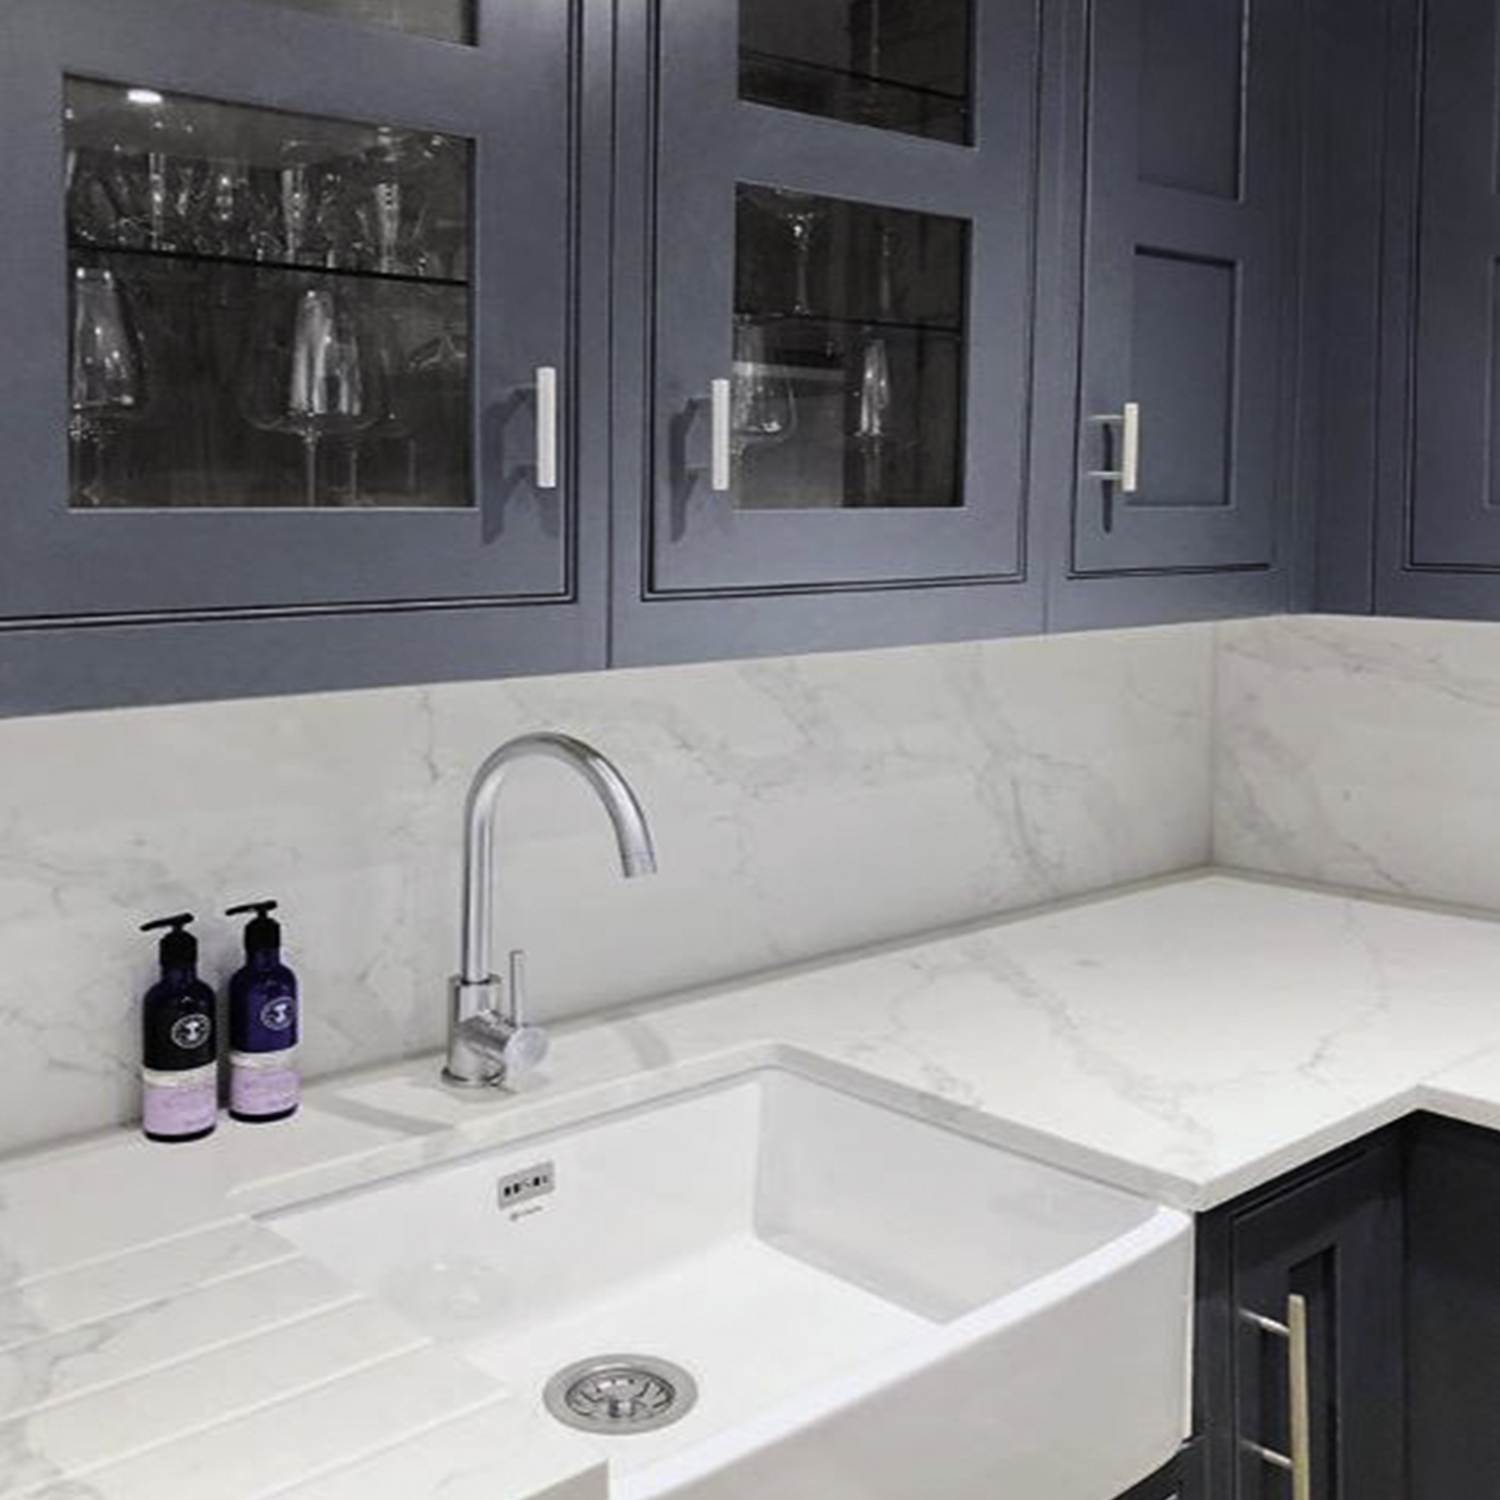 skyscraper silver handle on dark blue cupboards in a blue and white marble kitchen